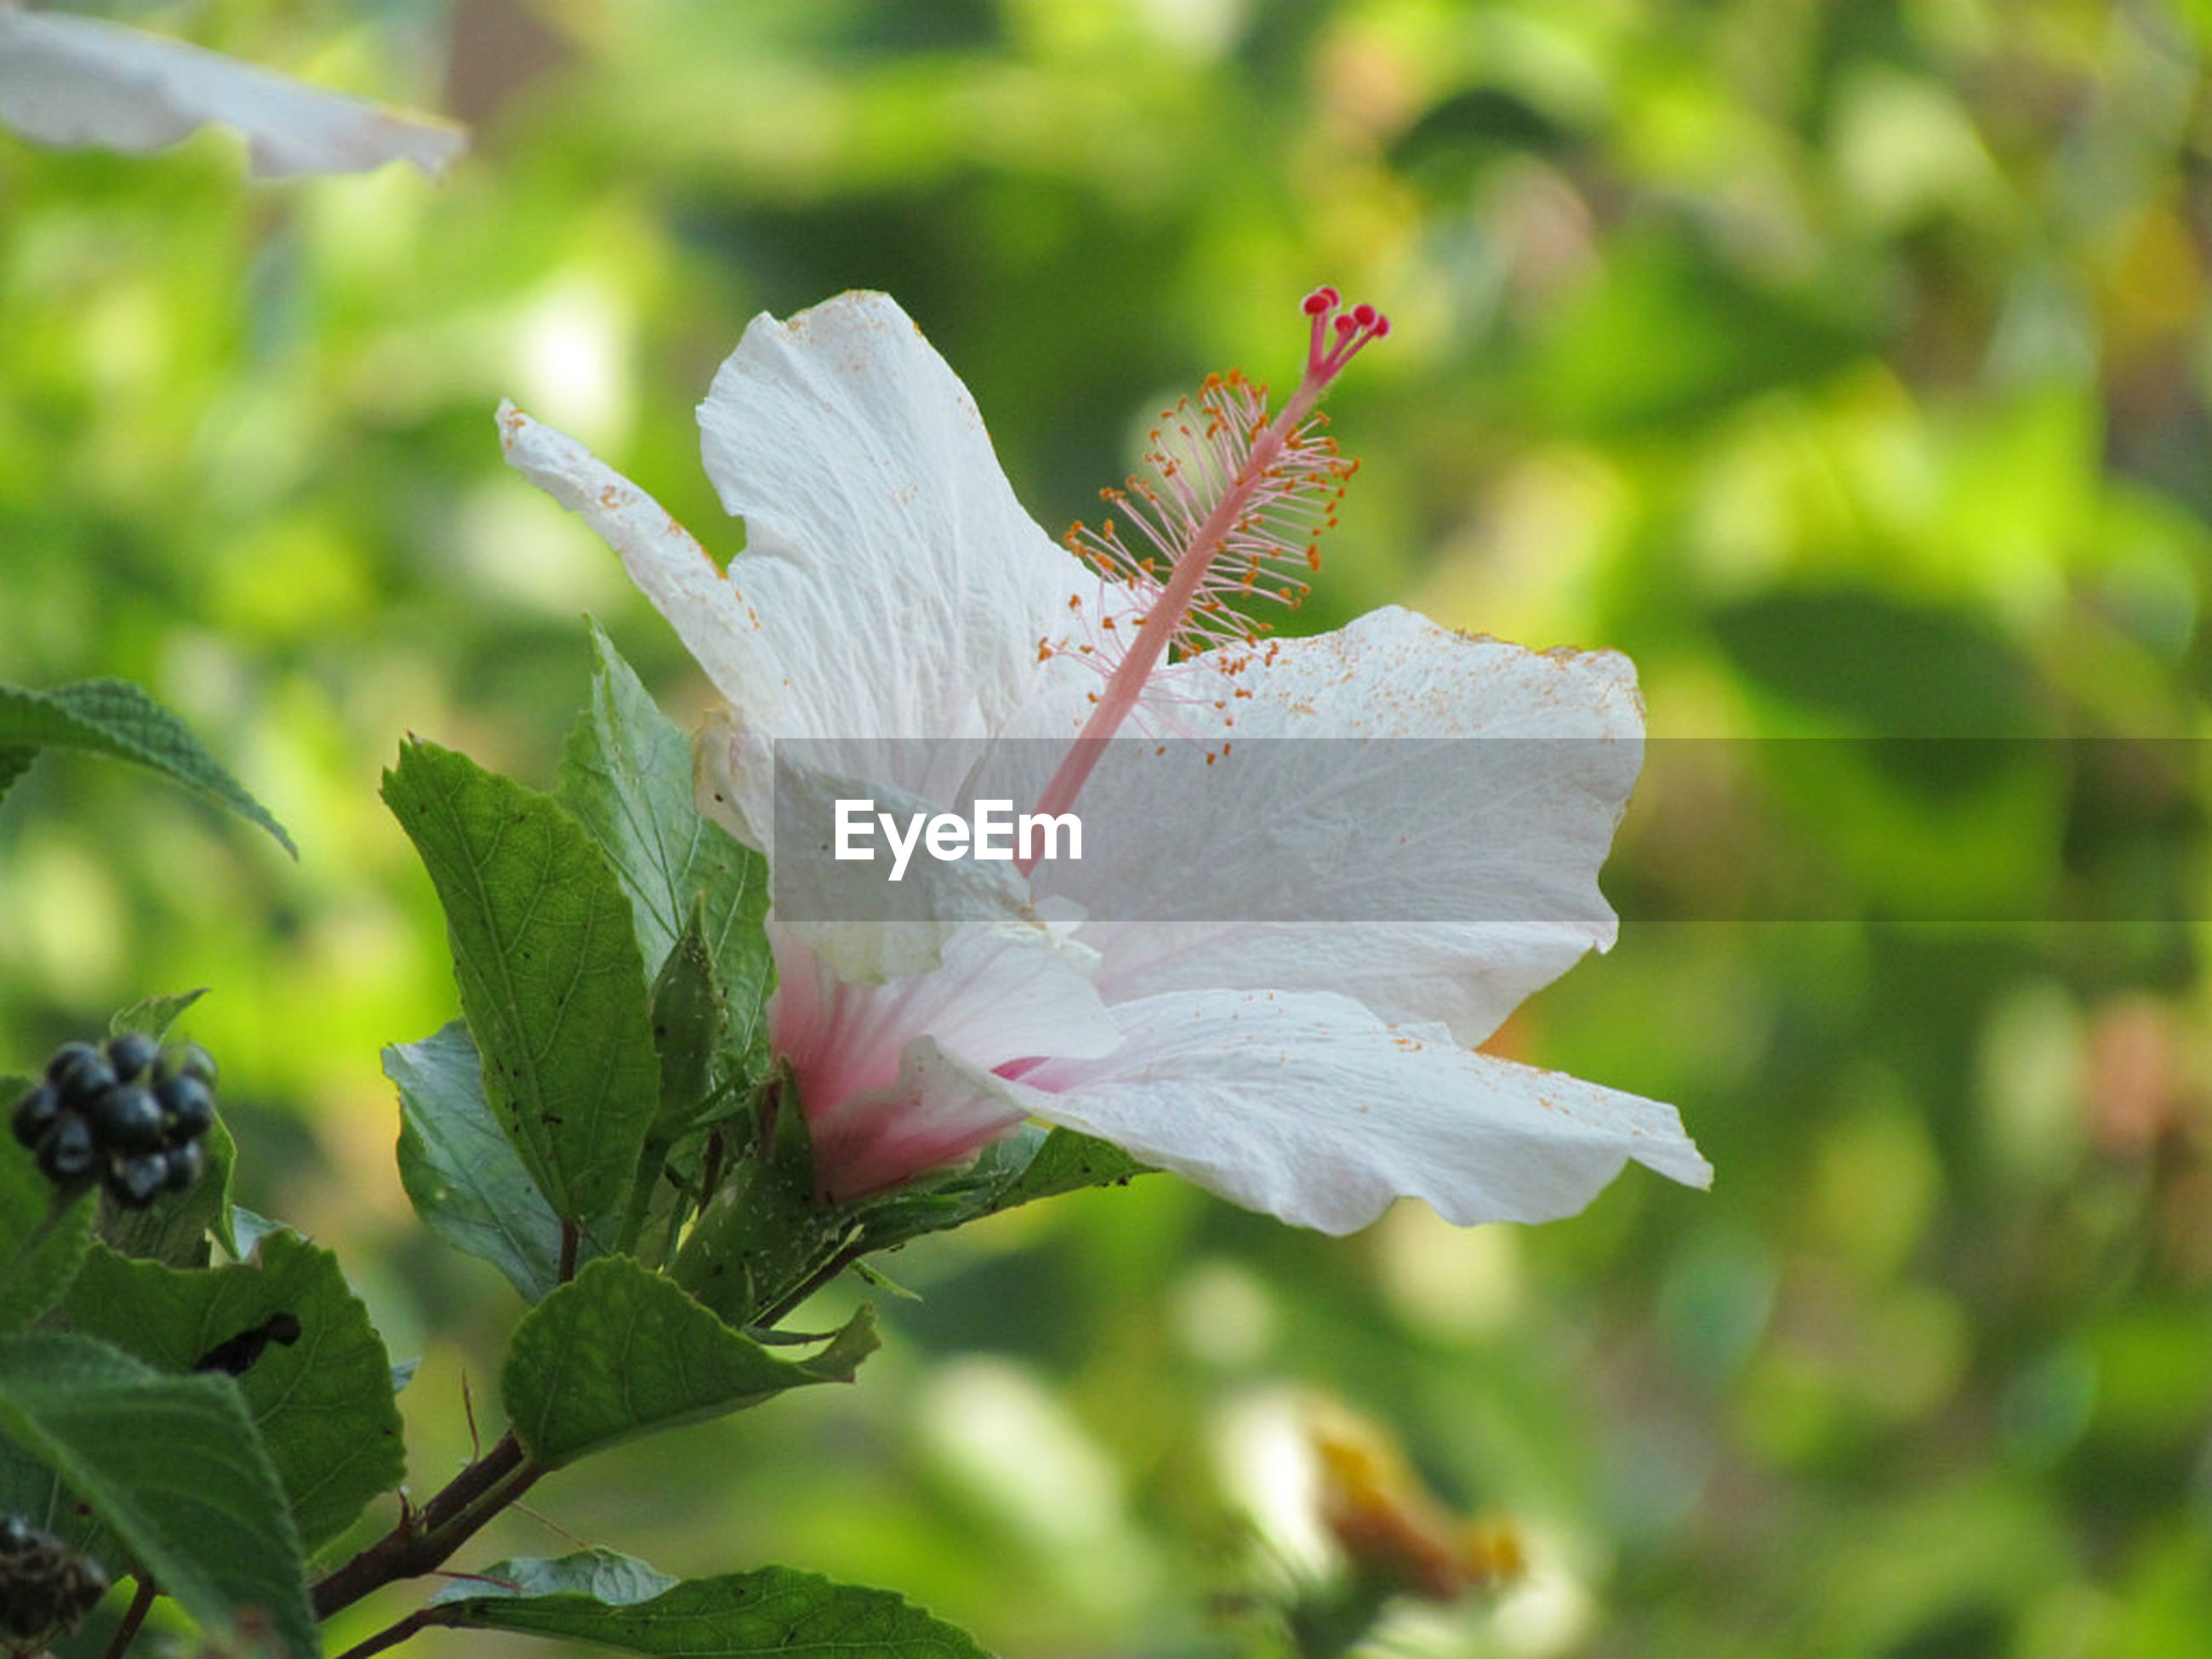 flower, plant, nature, close-up, growth, beauty in nature, petal, fragility, leaf, no people, one animal, flower head, outdoors, freshness, animal themes, insect, day, pistil